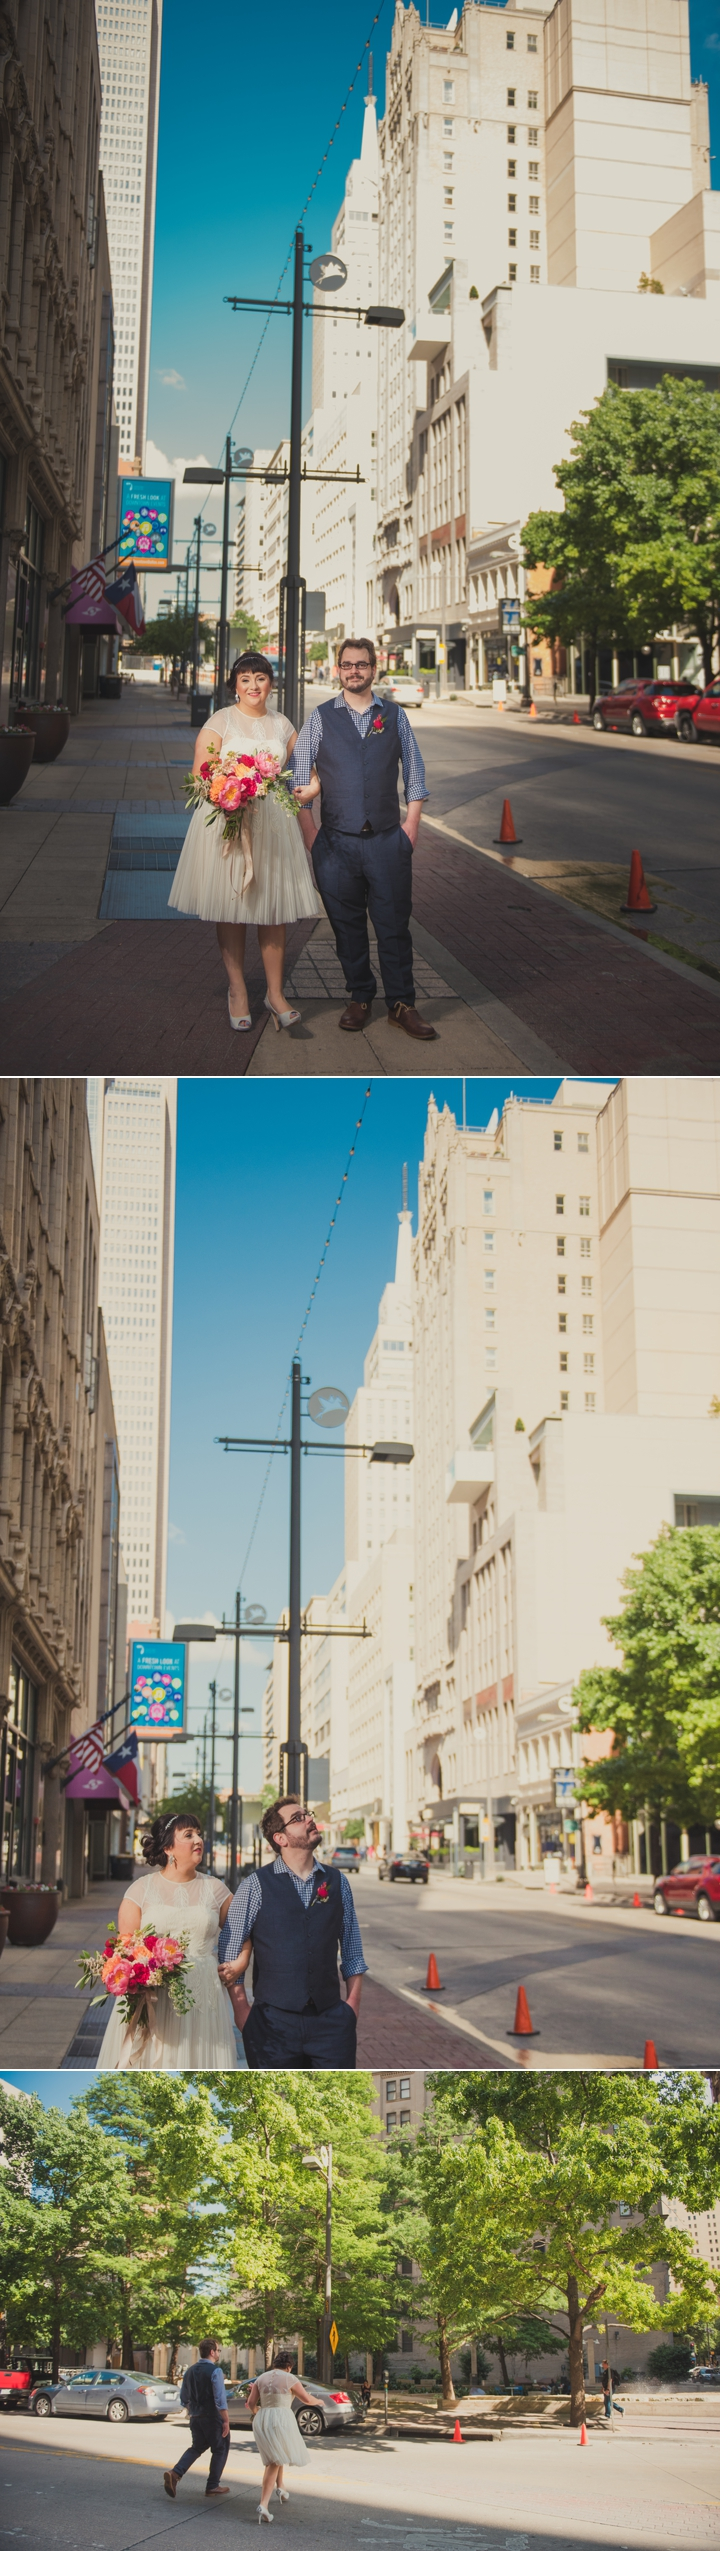 dallas-wedding-photographer-hw 30.jpg